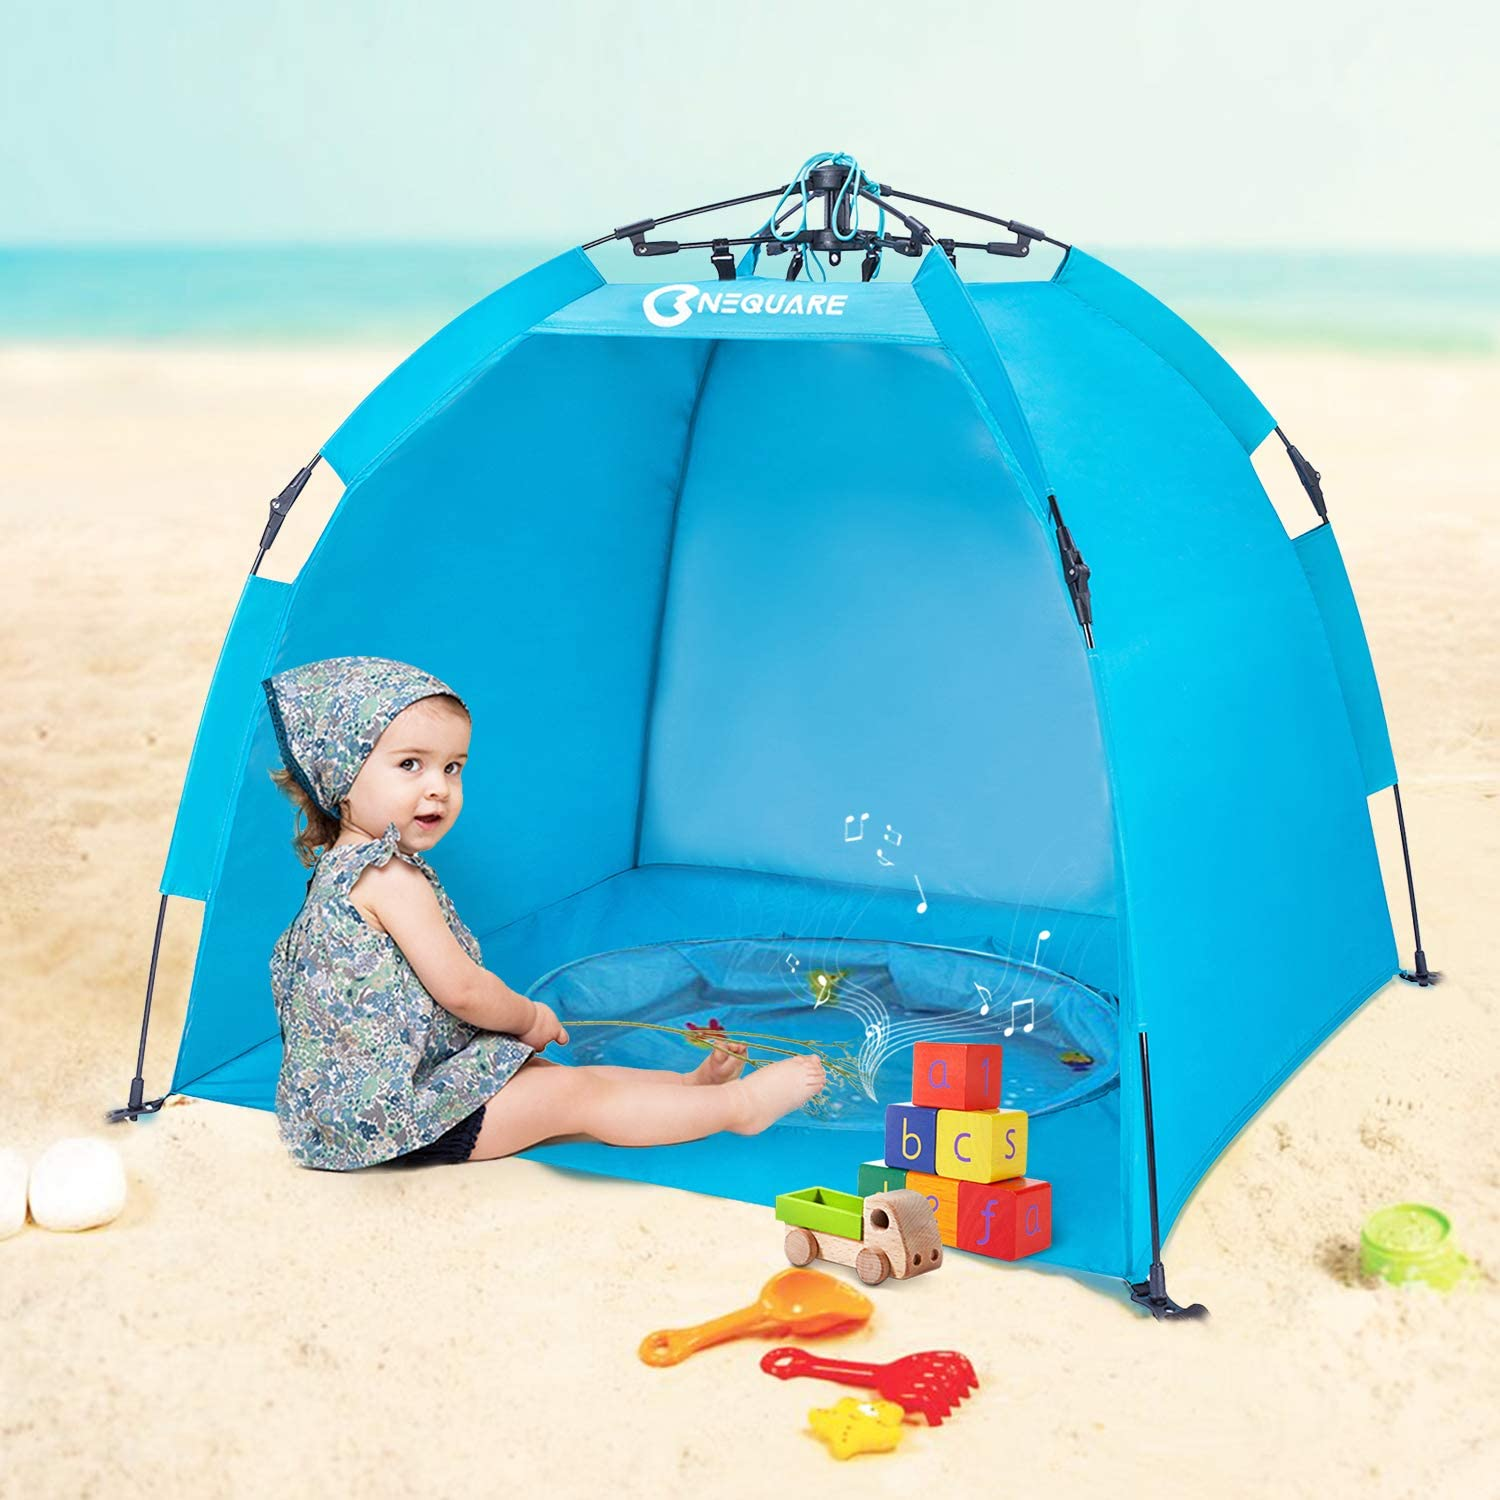 NEQUARE Baby Beach Tent, Automatic Instant Baby Tent and Portable Beach Tent Umbrella Outdoor Sun Shelter with Carrying Bag, 4 Pegs, Anti-UV 50 Protect Child from The Sun, Waterproof Windproof, Blue